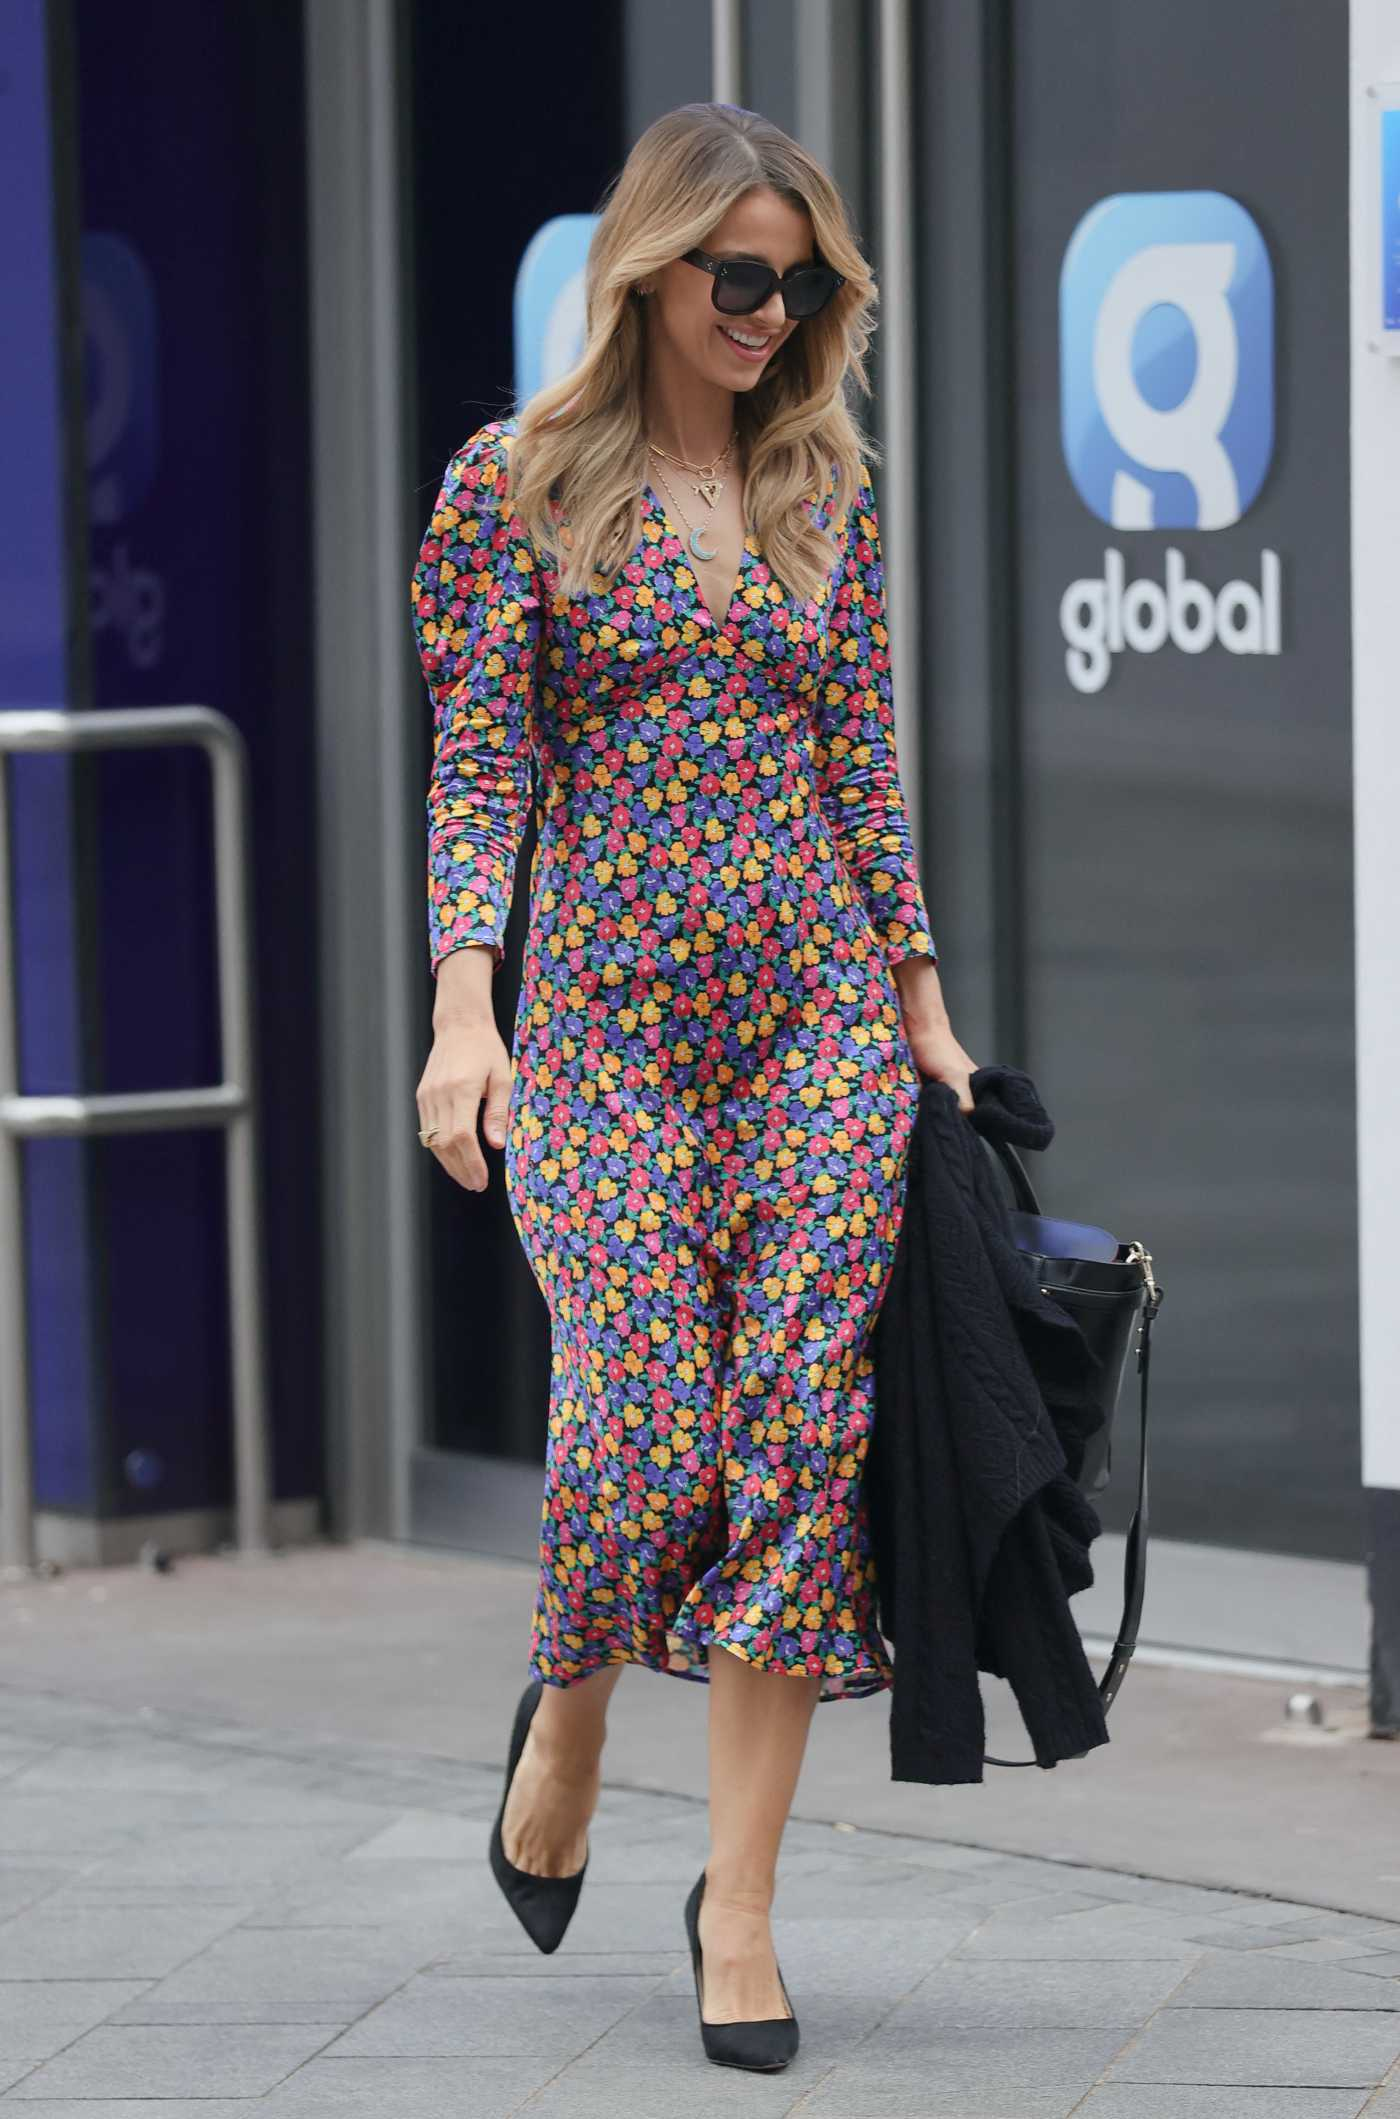 Vogue Williams in a Floral Dress Leaves the Global Radio in London 03/28/2021